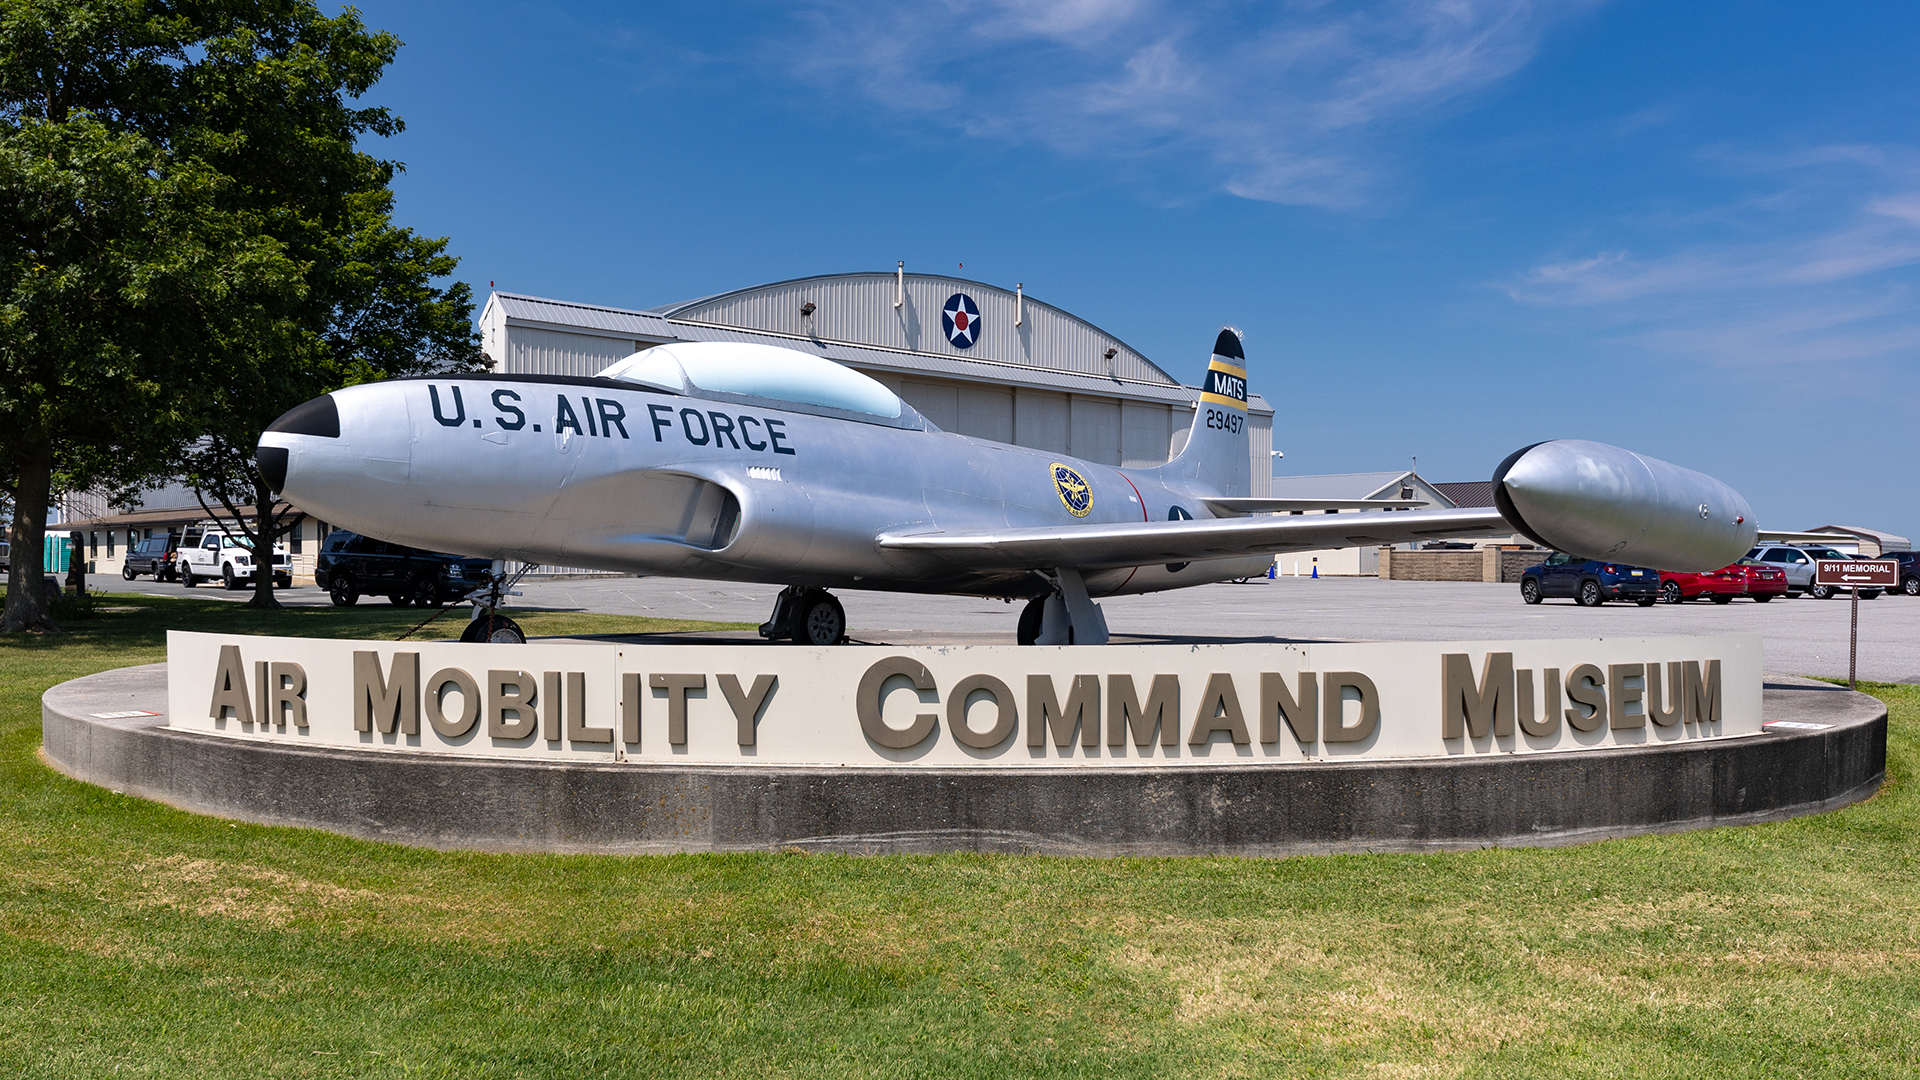 air-mobility-command-museum-1-of-48